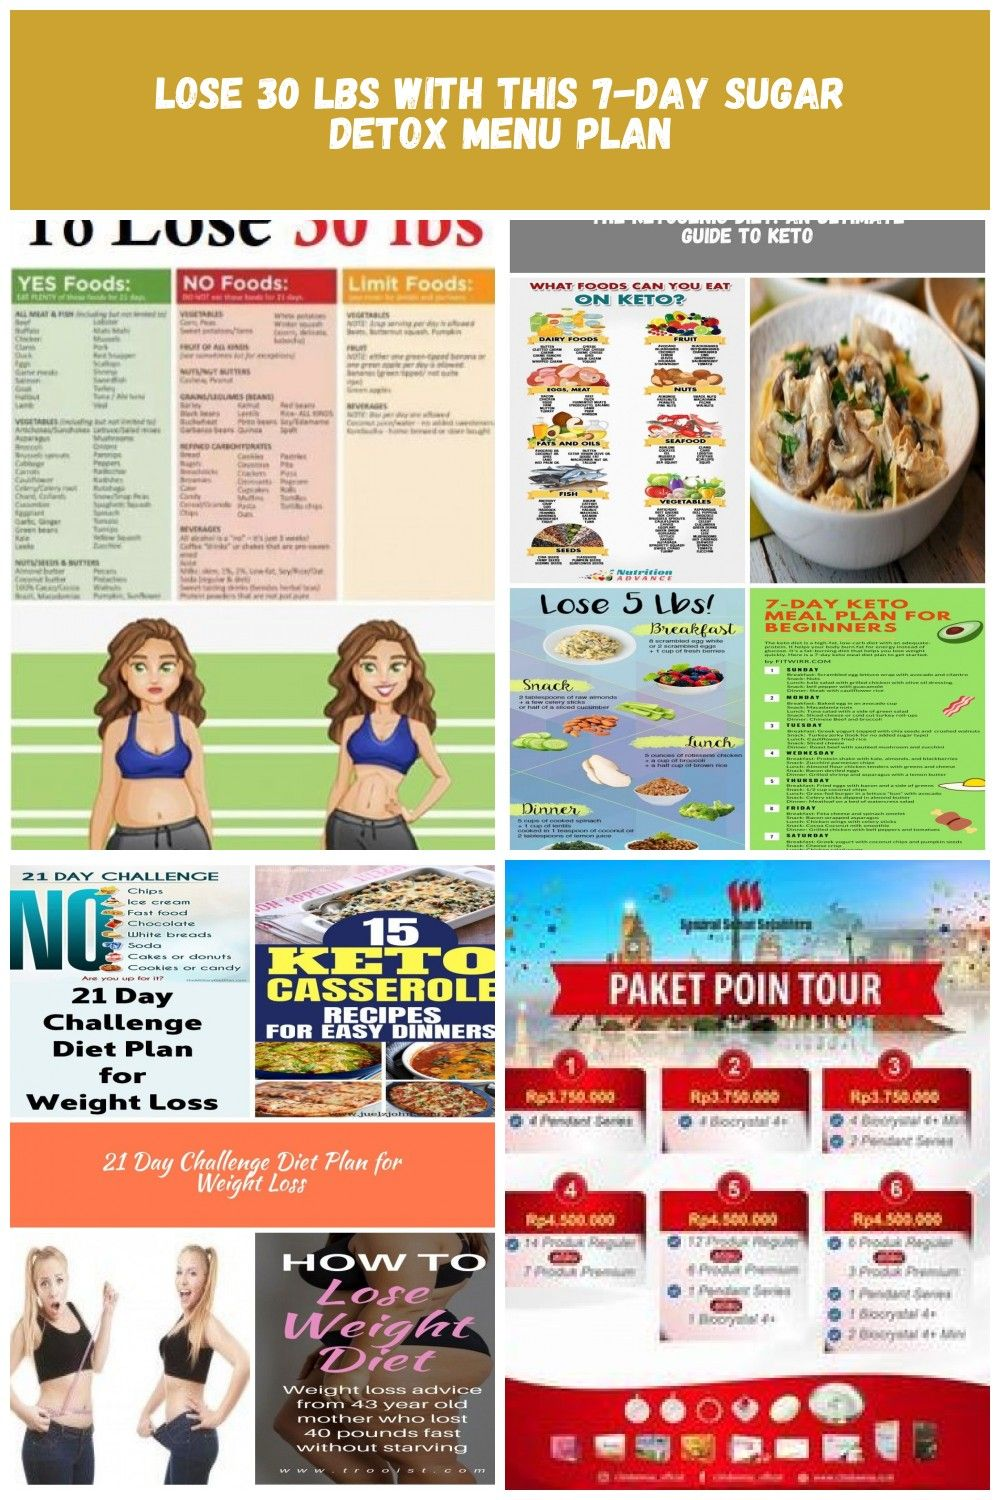 7 Day Sugar Detox Plan. A great way to embark on a healthy diet. These awesome diet tips are great for weight loss and will help your body detox from sugar. Includes 7 day healthy meal plan. #detoxtips  #healthydiet #diettips #fitness #womensfitness diet plan indonesia Lose 30 lbs with This 7-Day Sugar Detox Menu Plan #sugardetoxplan